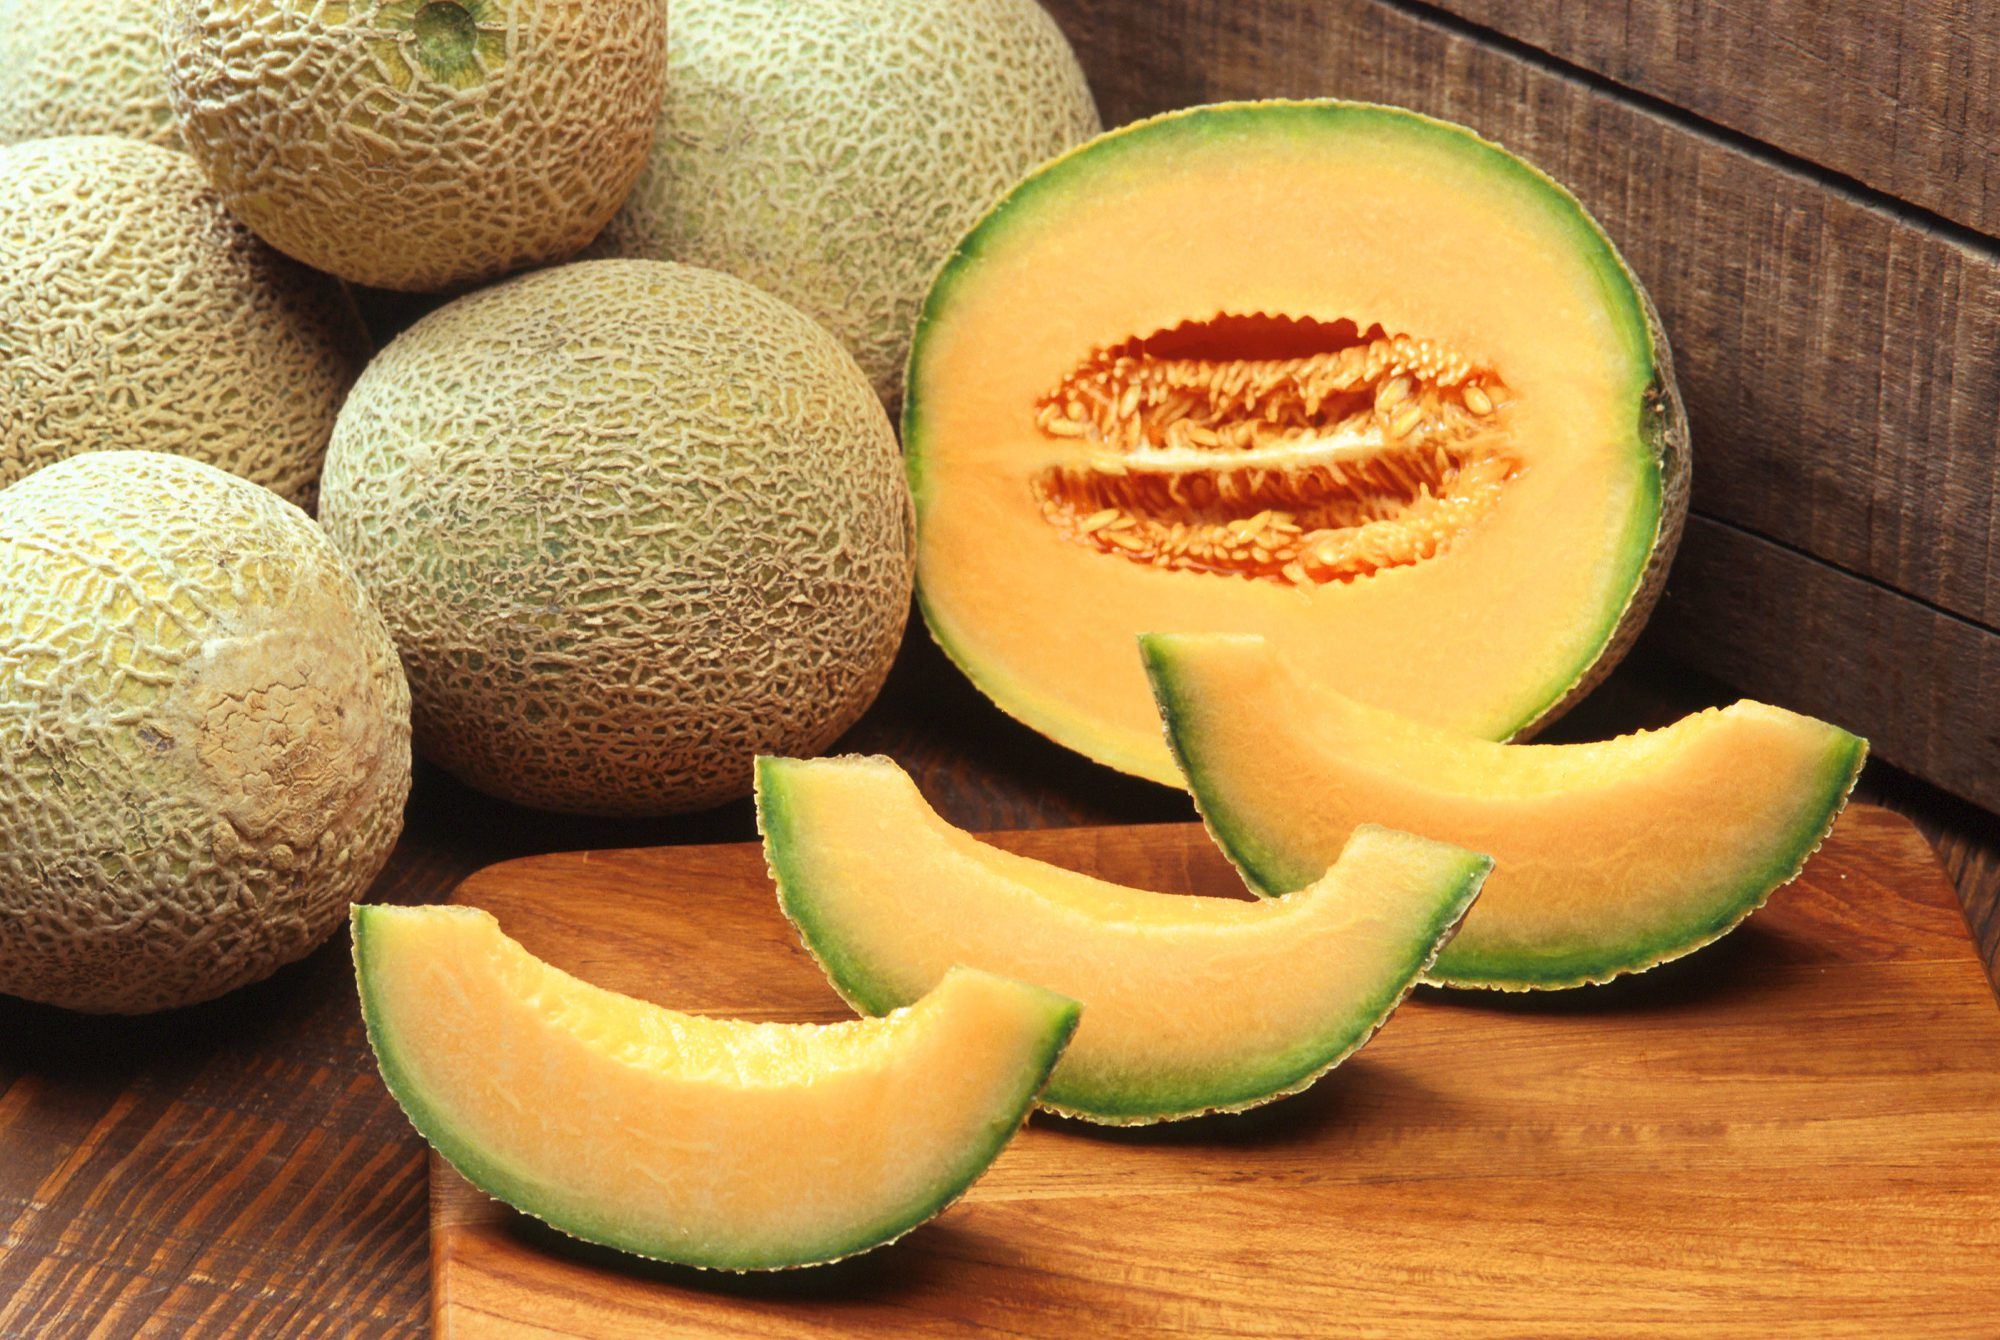 Produce of the Month: Cantaloupe